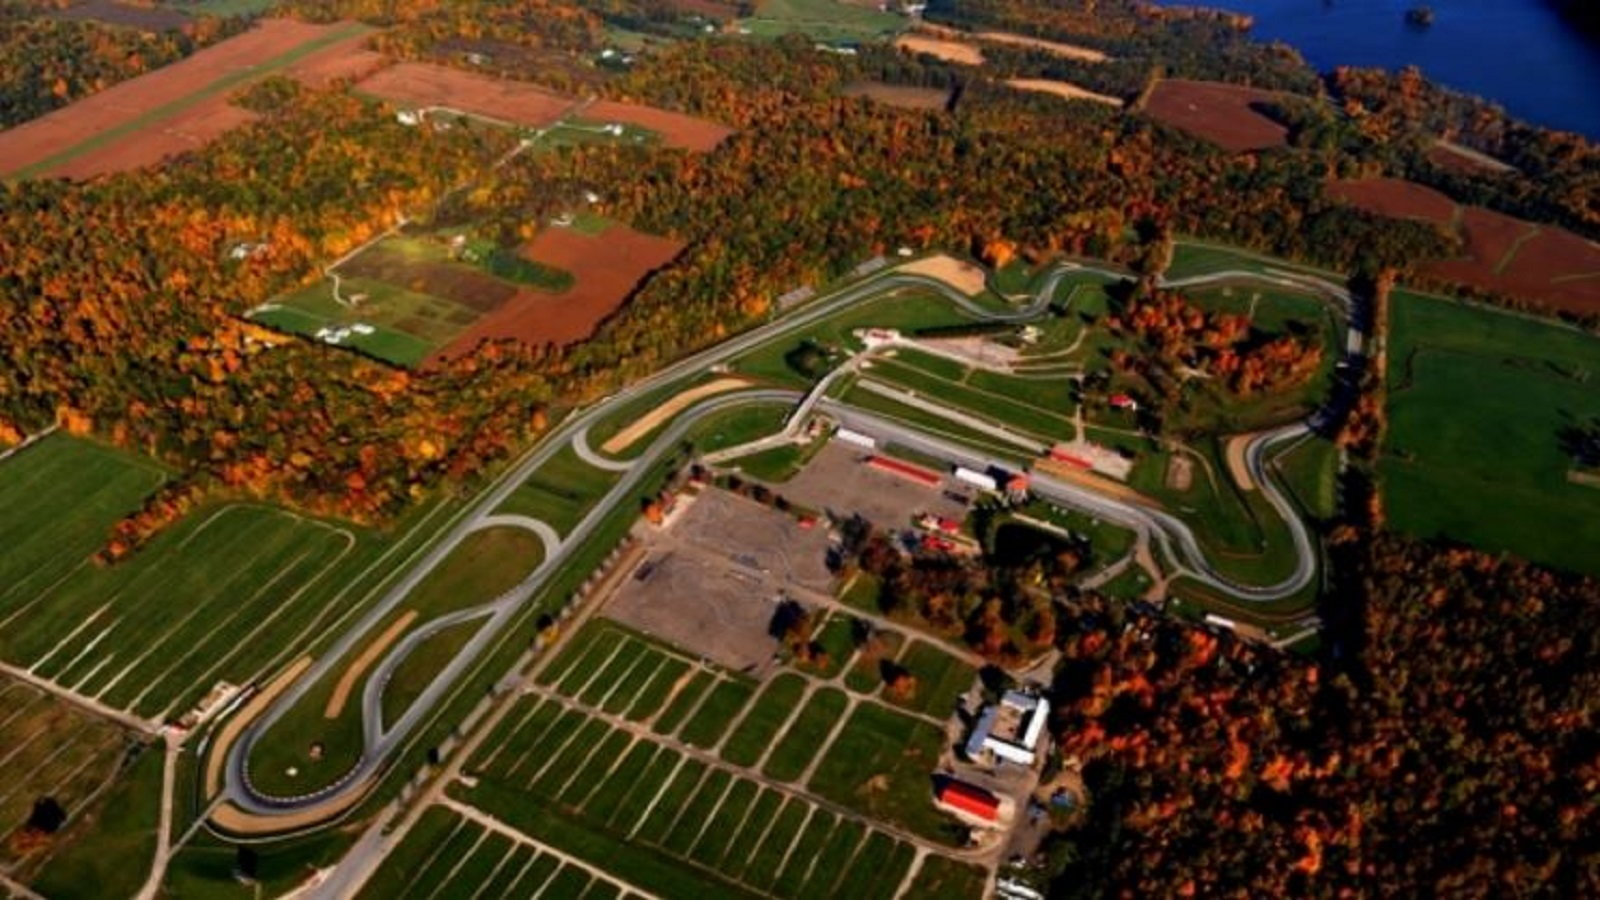 The Mid Ohio Sports Car Course - Lexington, OH